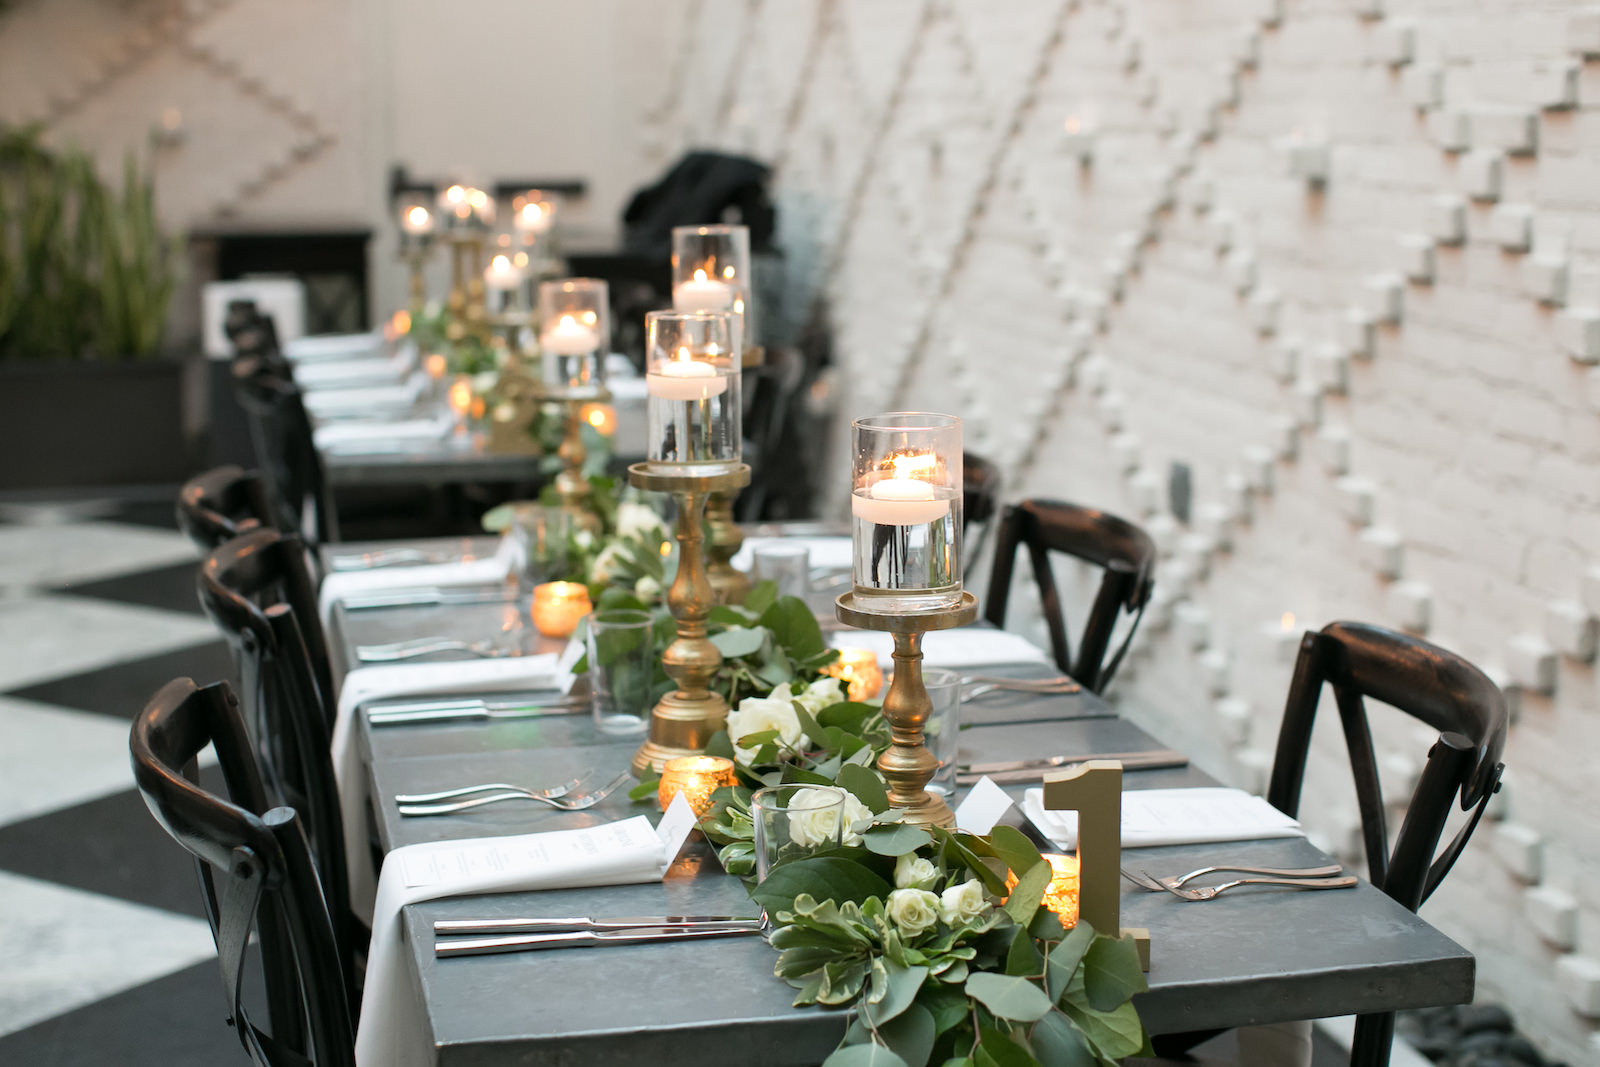 Tampa Wedding Reception at Oxford Exchange Downtown Tampa | Long Metal Banquet Tables with Black Cross Back Chairs and White Napkins | Wedding Centerpieces of Floating Pedestal Candles and Greenery Garland